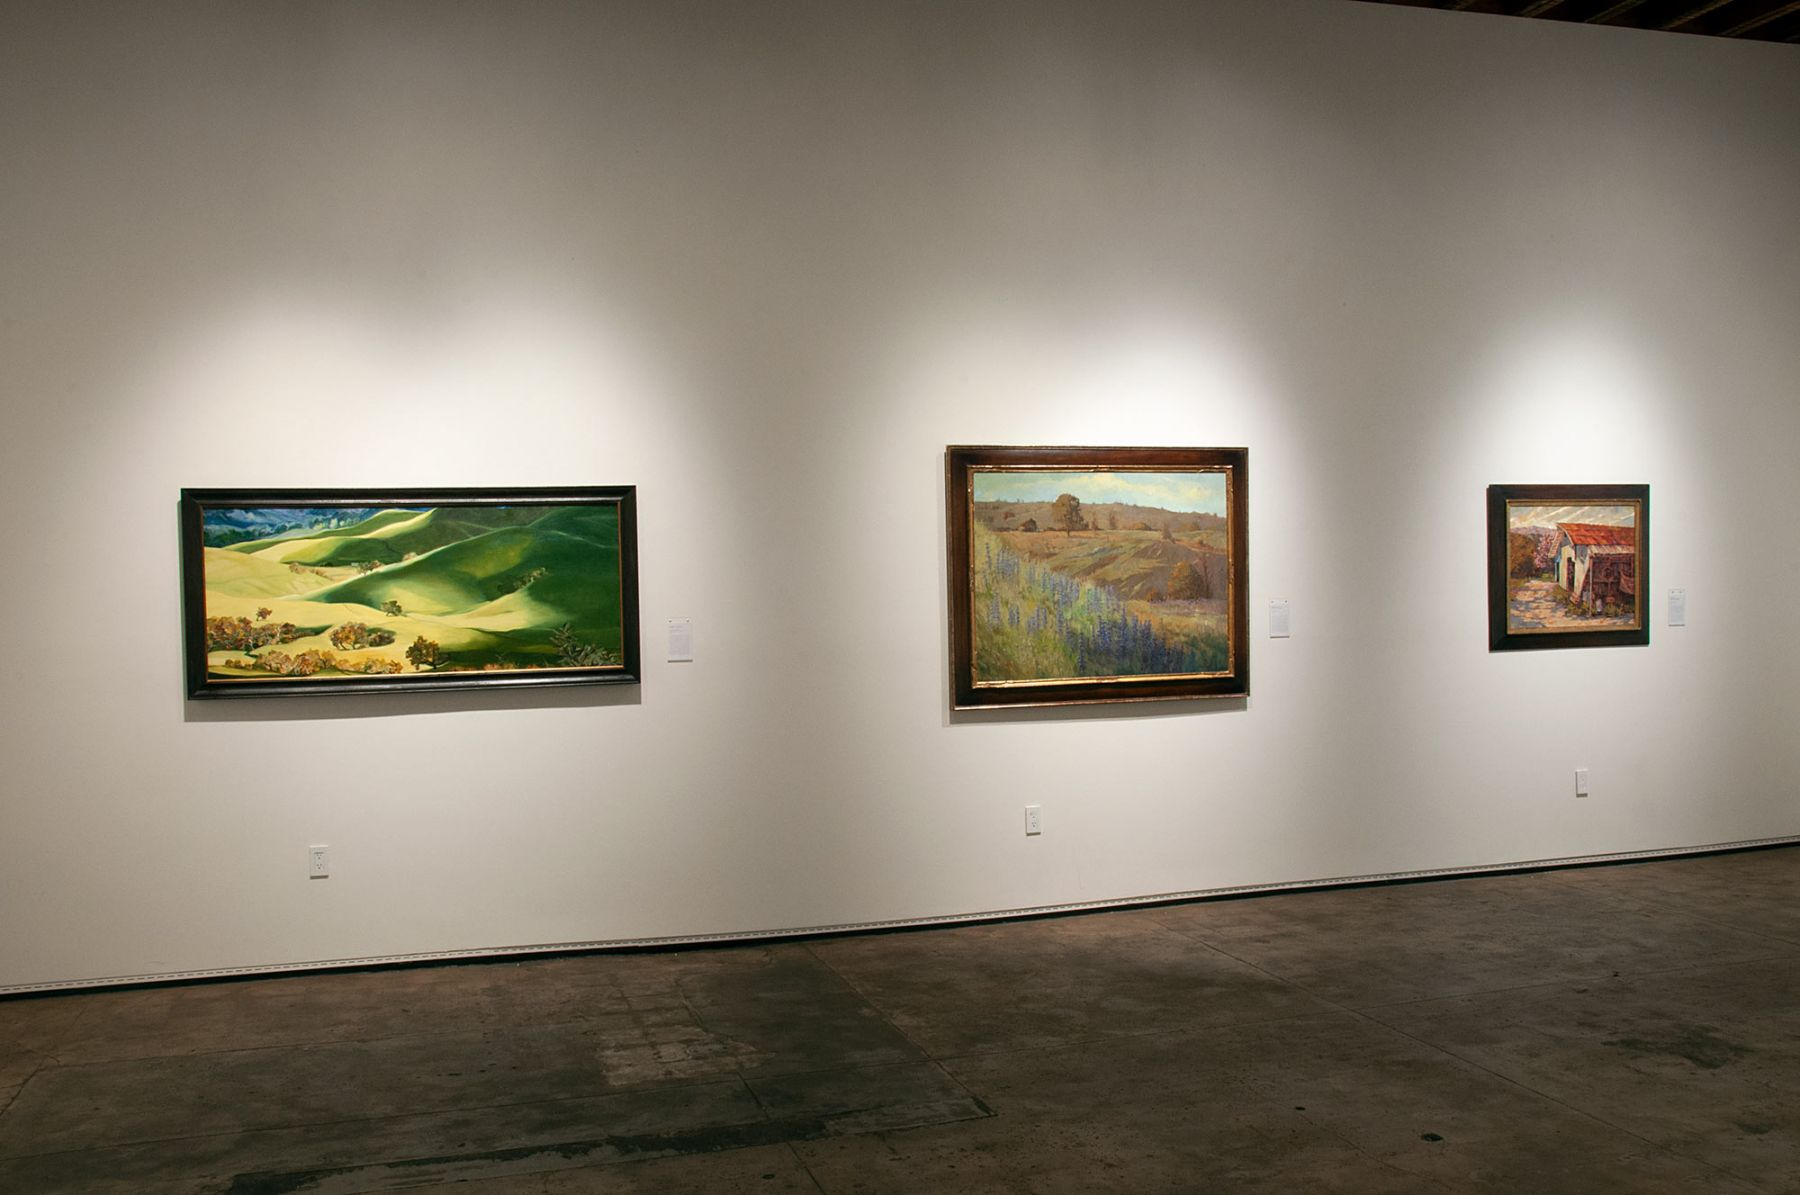 MASTERWORKS OF THE ARTISTS OF SULLIVAN GOSS exhibition, Robin Gowen, Meredith Brooks Abbott, Whitney Brooks Abbott